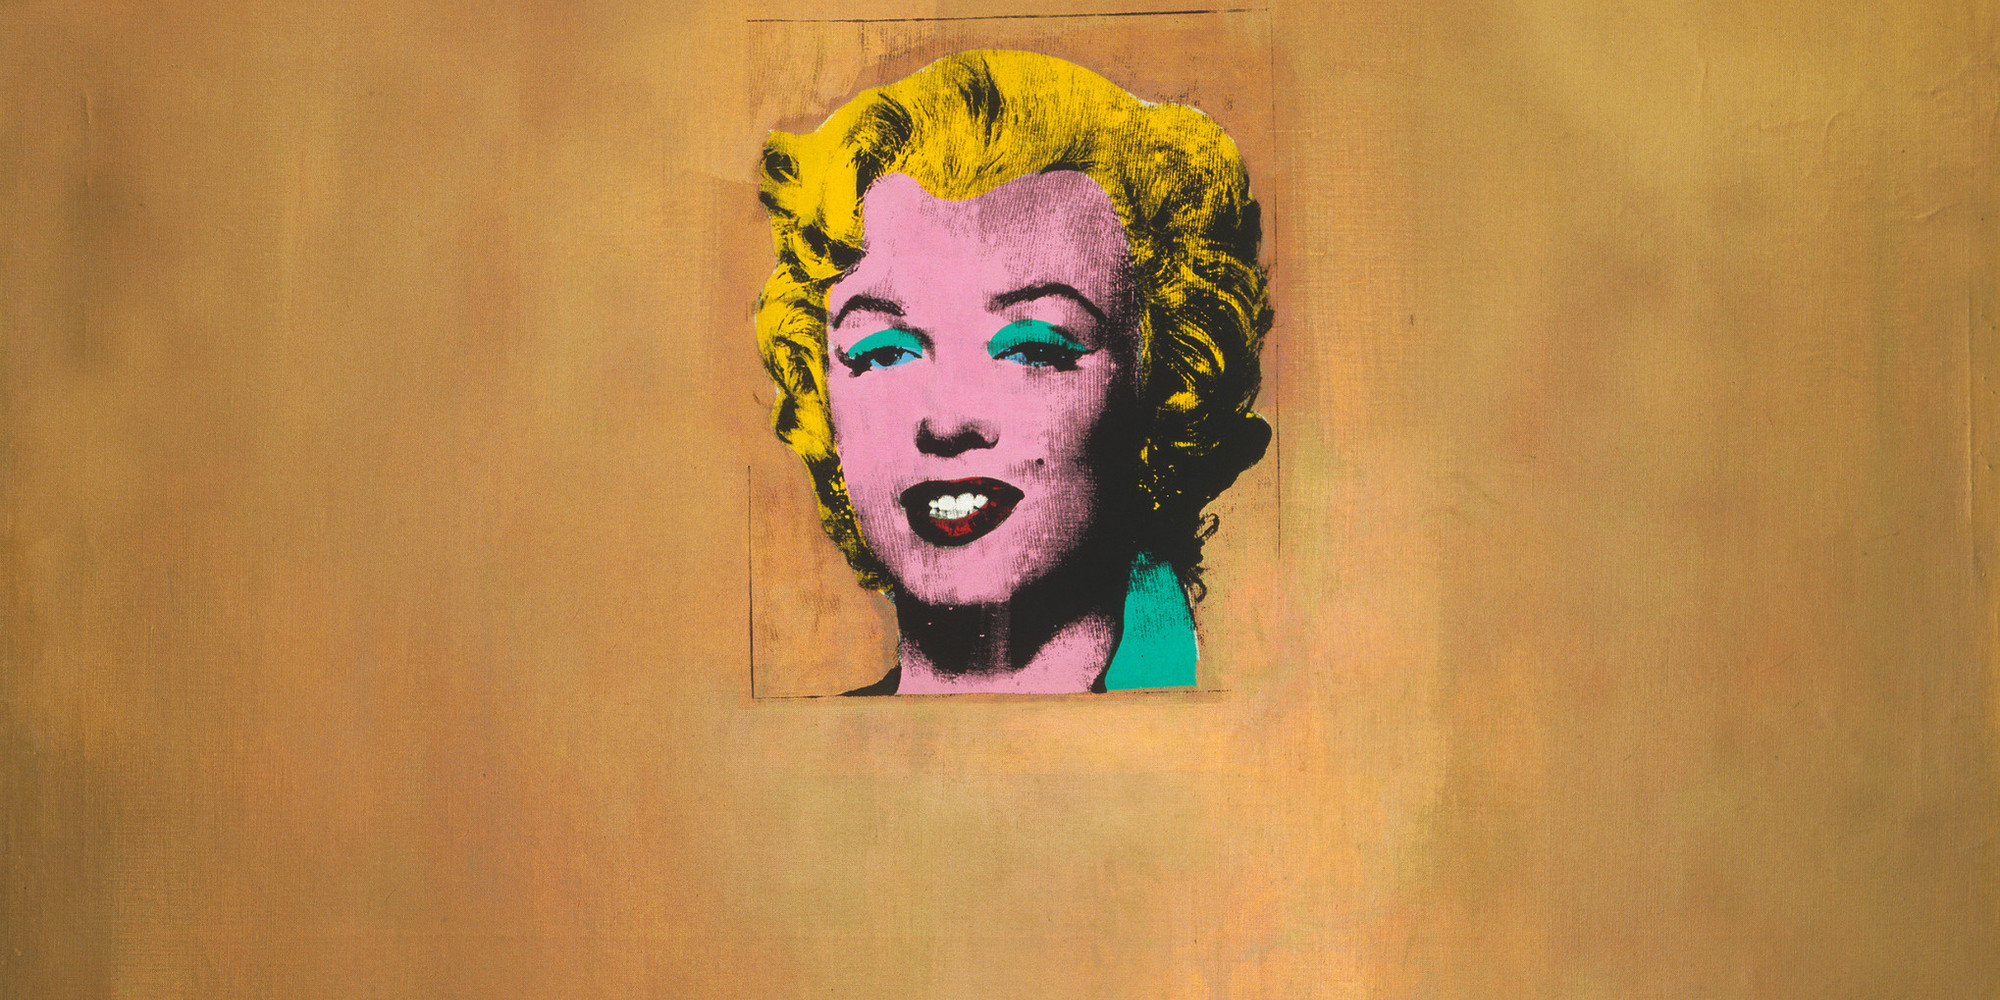 "Andy Warhol. Gold Marilyn Monroe. 1962. Silkscreen ink and acrylic on canvas, 6' 11 1/4"" × 57"" (211.4 × 144.7 cm). Gift of Philip Johnson. © 2019 Andy Warhol Foundation for the Visual Arts/Artists Rights Society (ARS), New York"